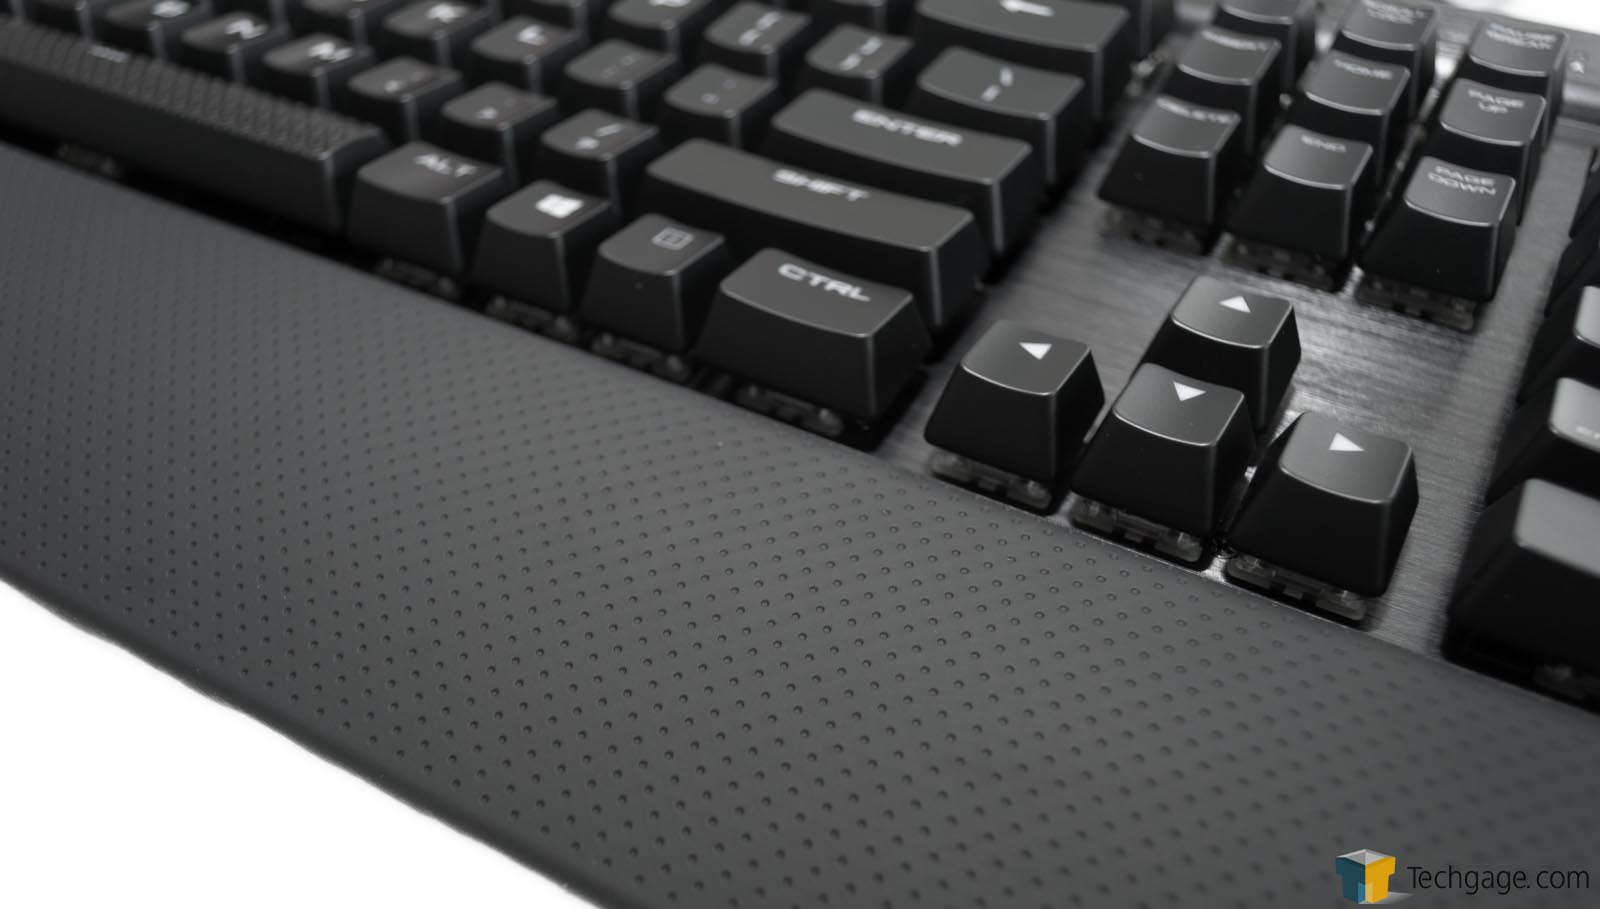 A Review Of The Refreshed Corsair K70 – The K70 RGB